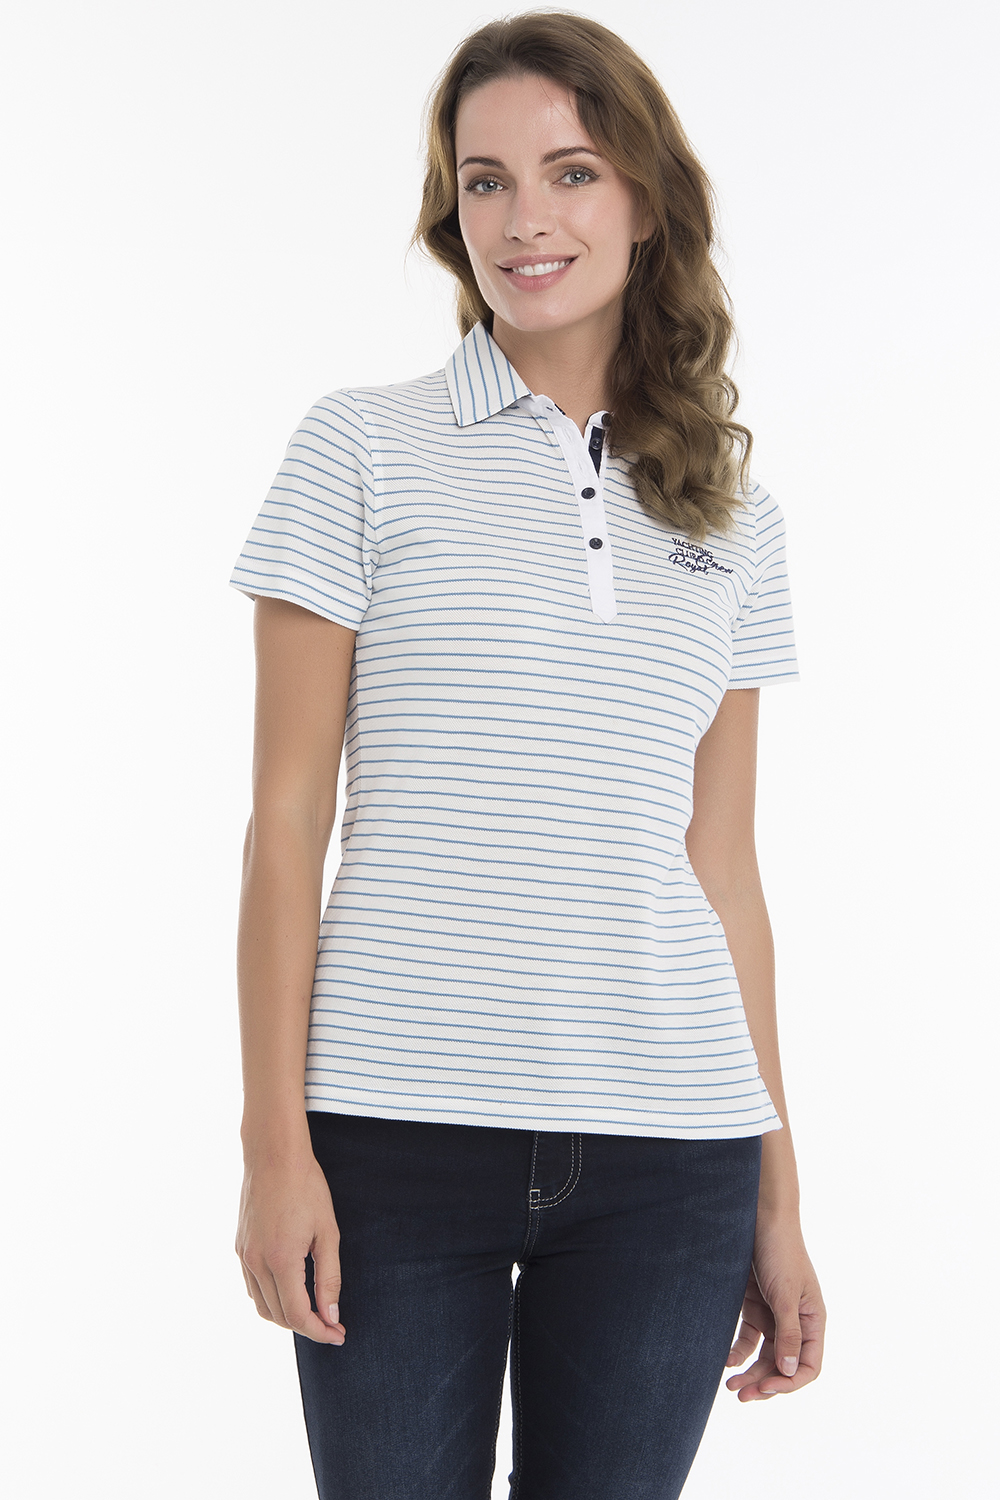 Women's Poloshirt Knitted White/Blue Cotton